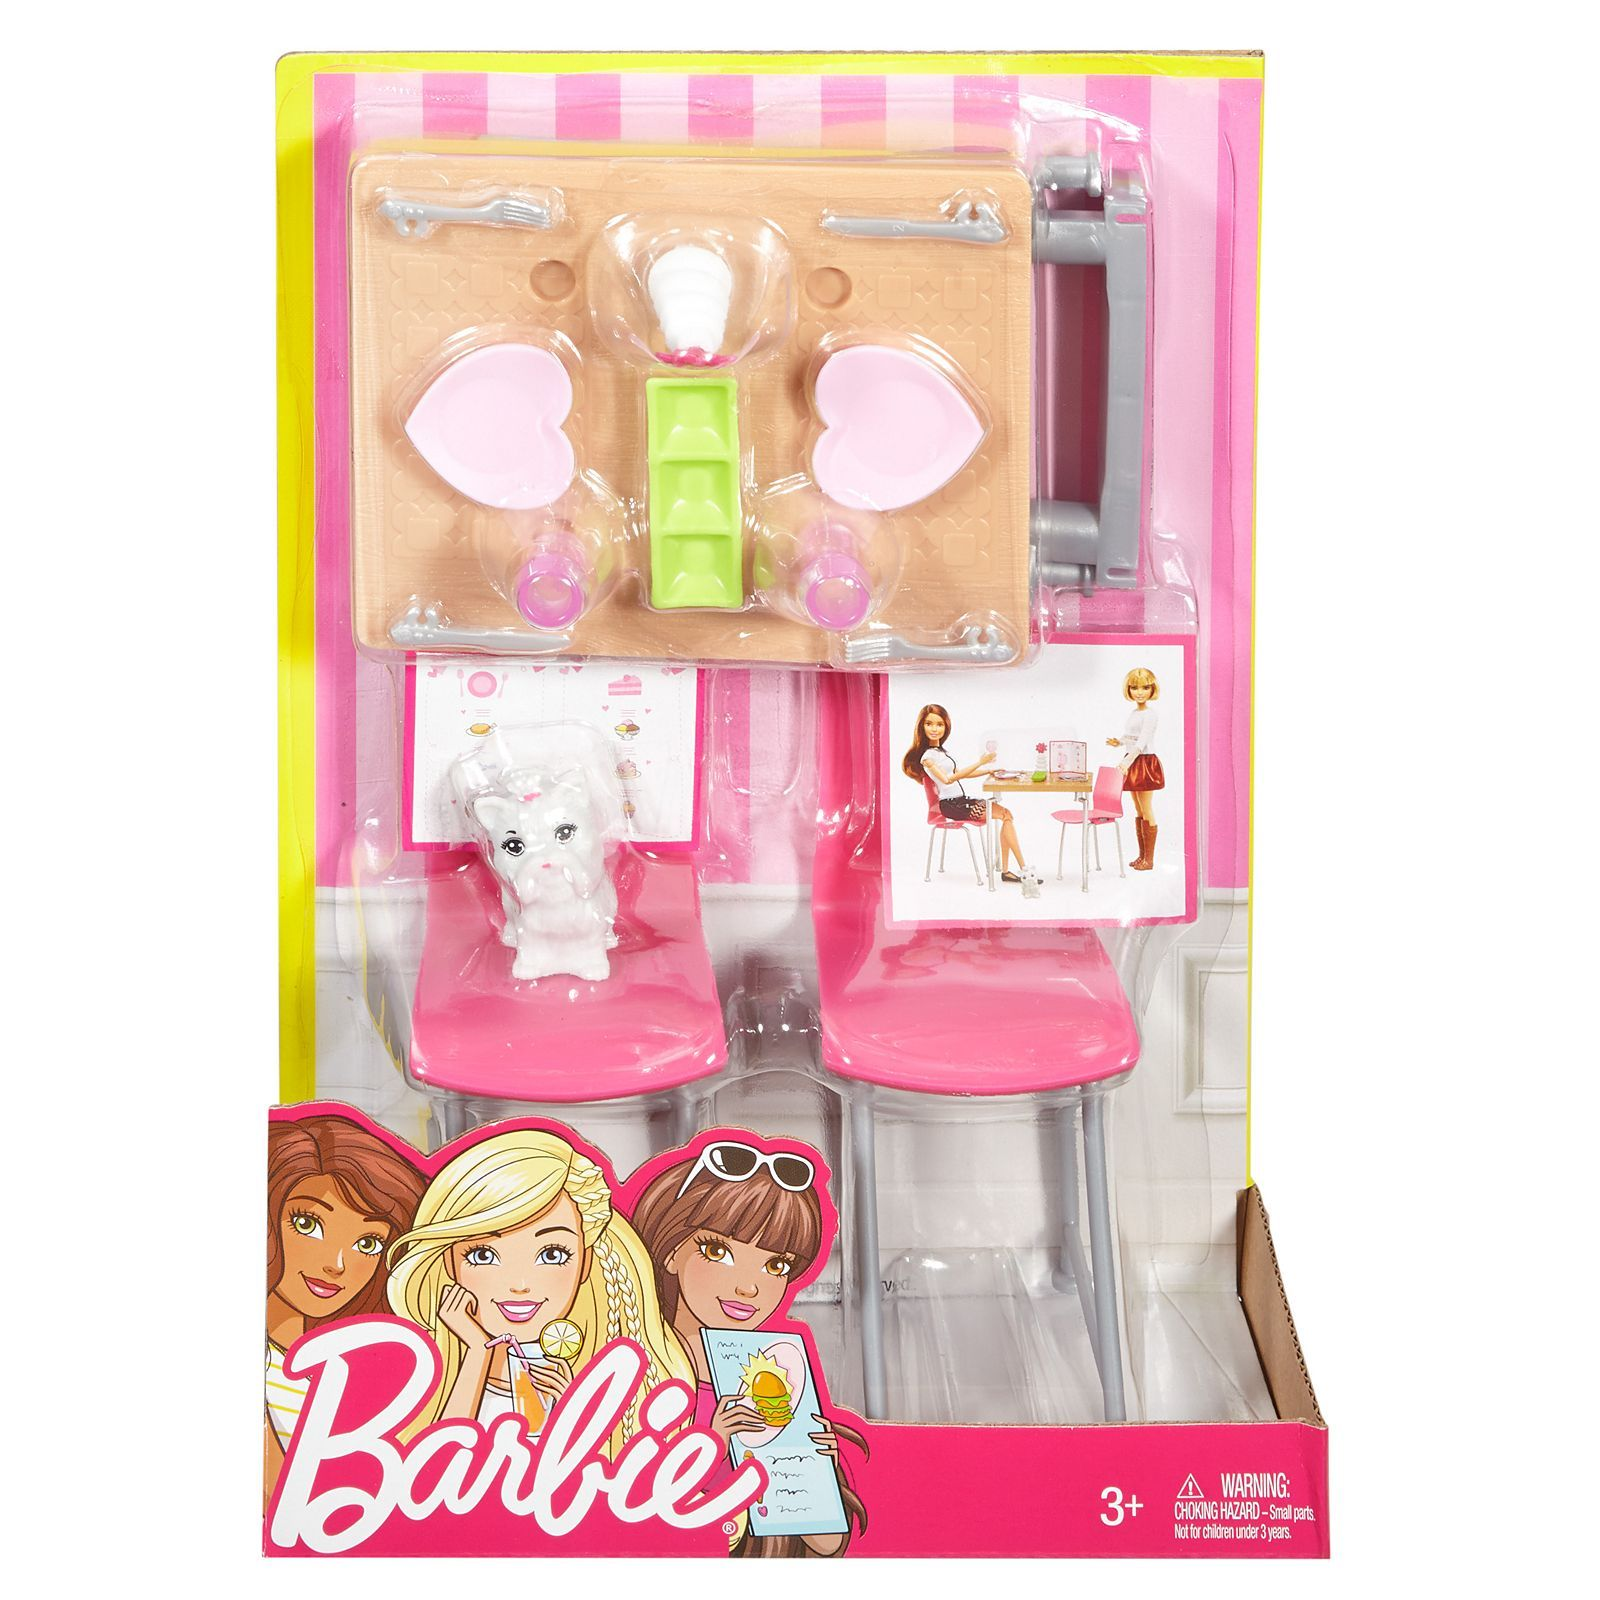 Barbie Dining Set Kitten Dvx45 Barbie Barbie Toys Barbie Doll Accessories Barbie